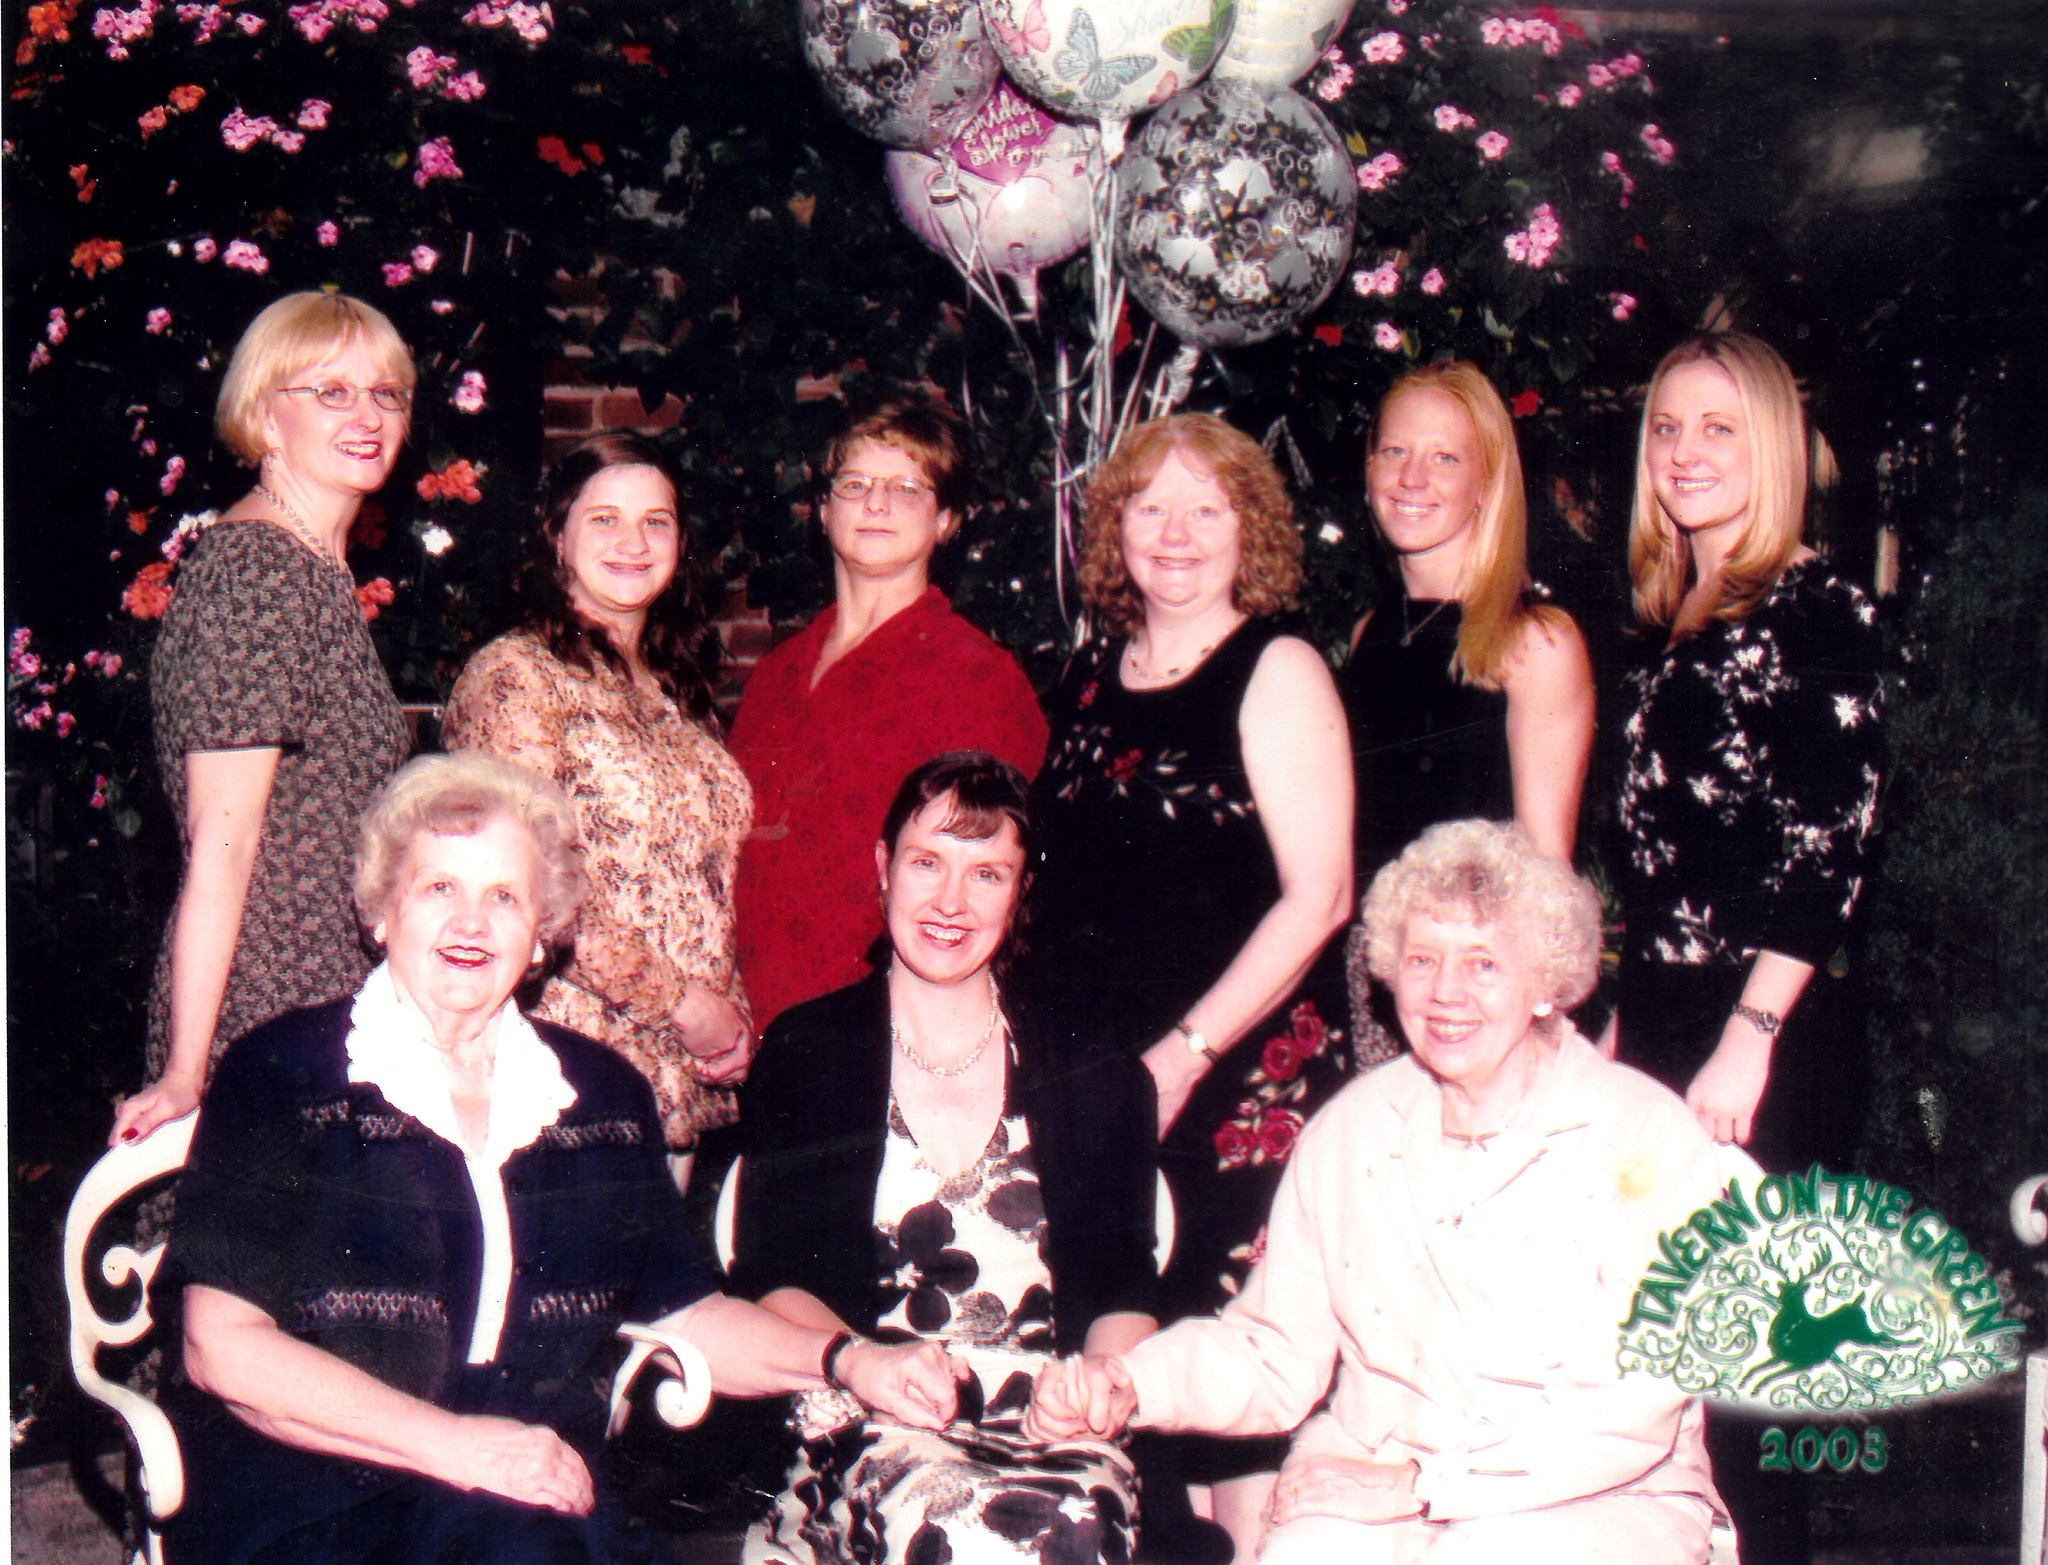 Family at Marjorie Coeyman Kehe's engagement party - Summer 2003